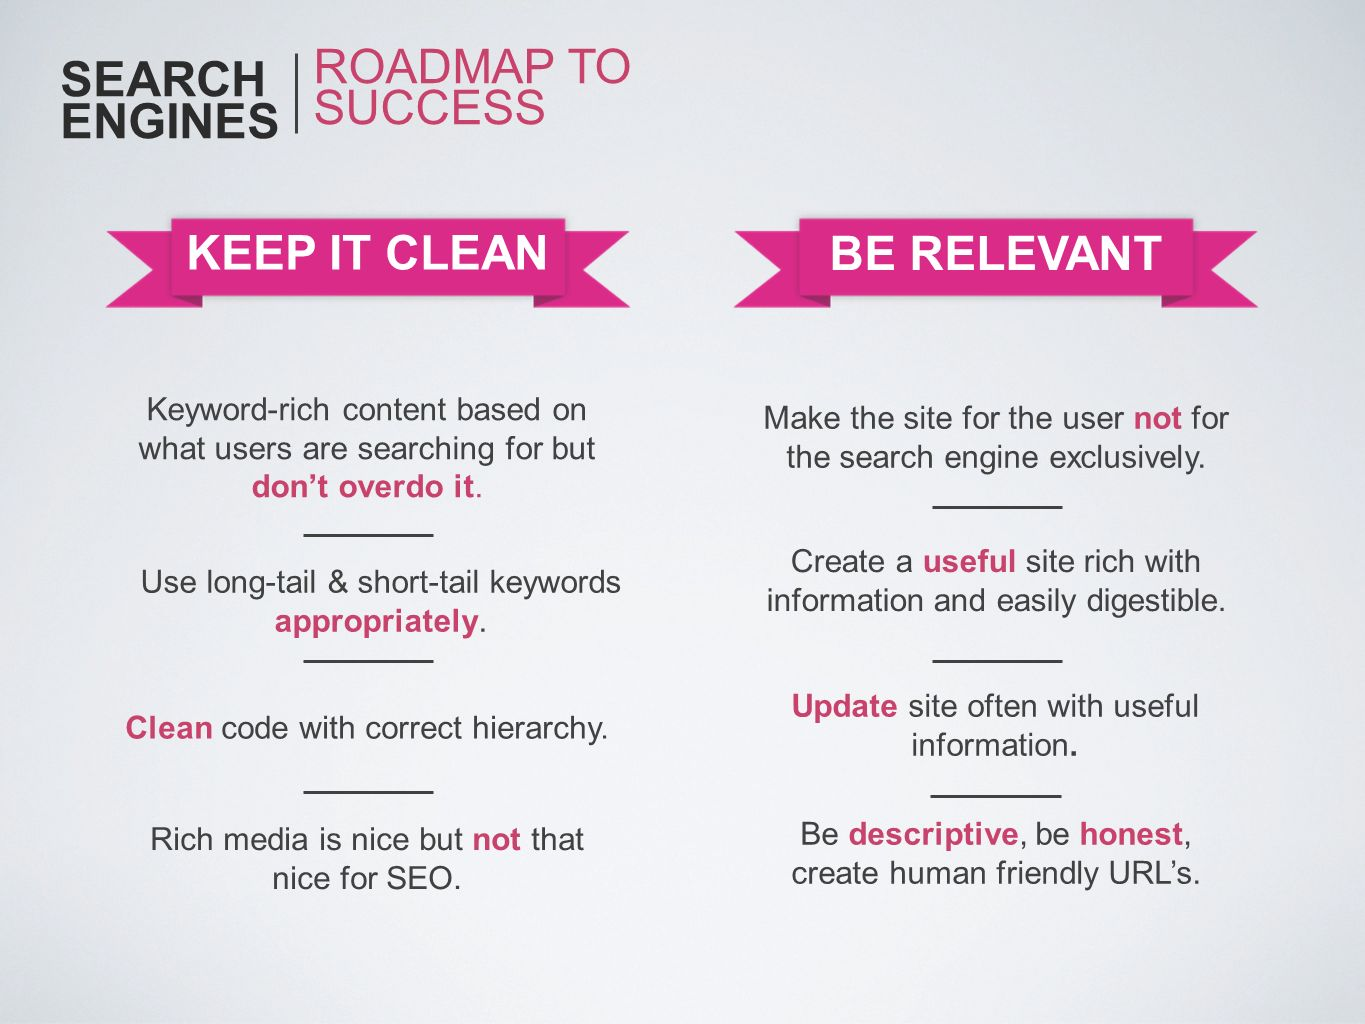 SEARCH ENGINES ROADMAP TO SUCCESS KEEP IT CLEAN BE RELEVANT